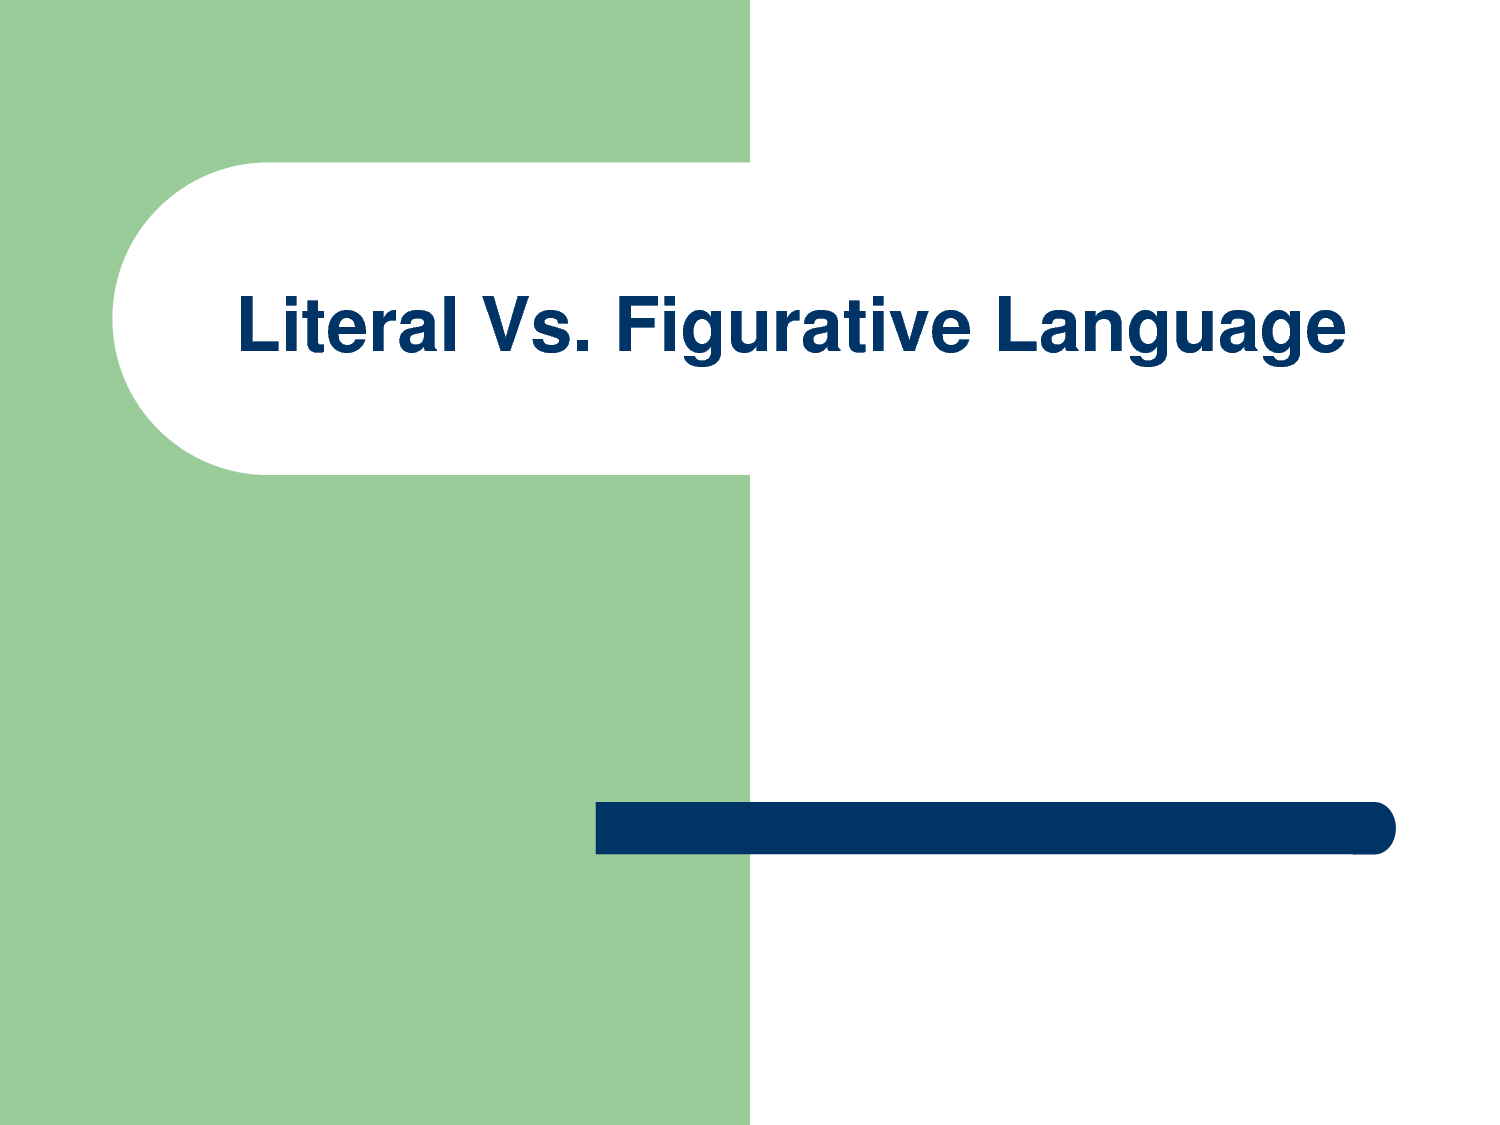 Literal Language Refers To Words That Do Not Deviate From